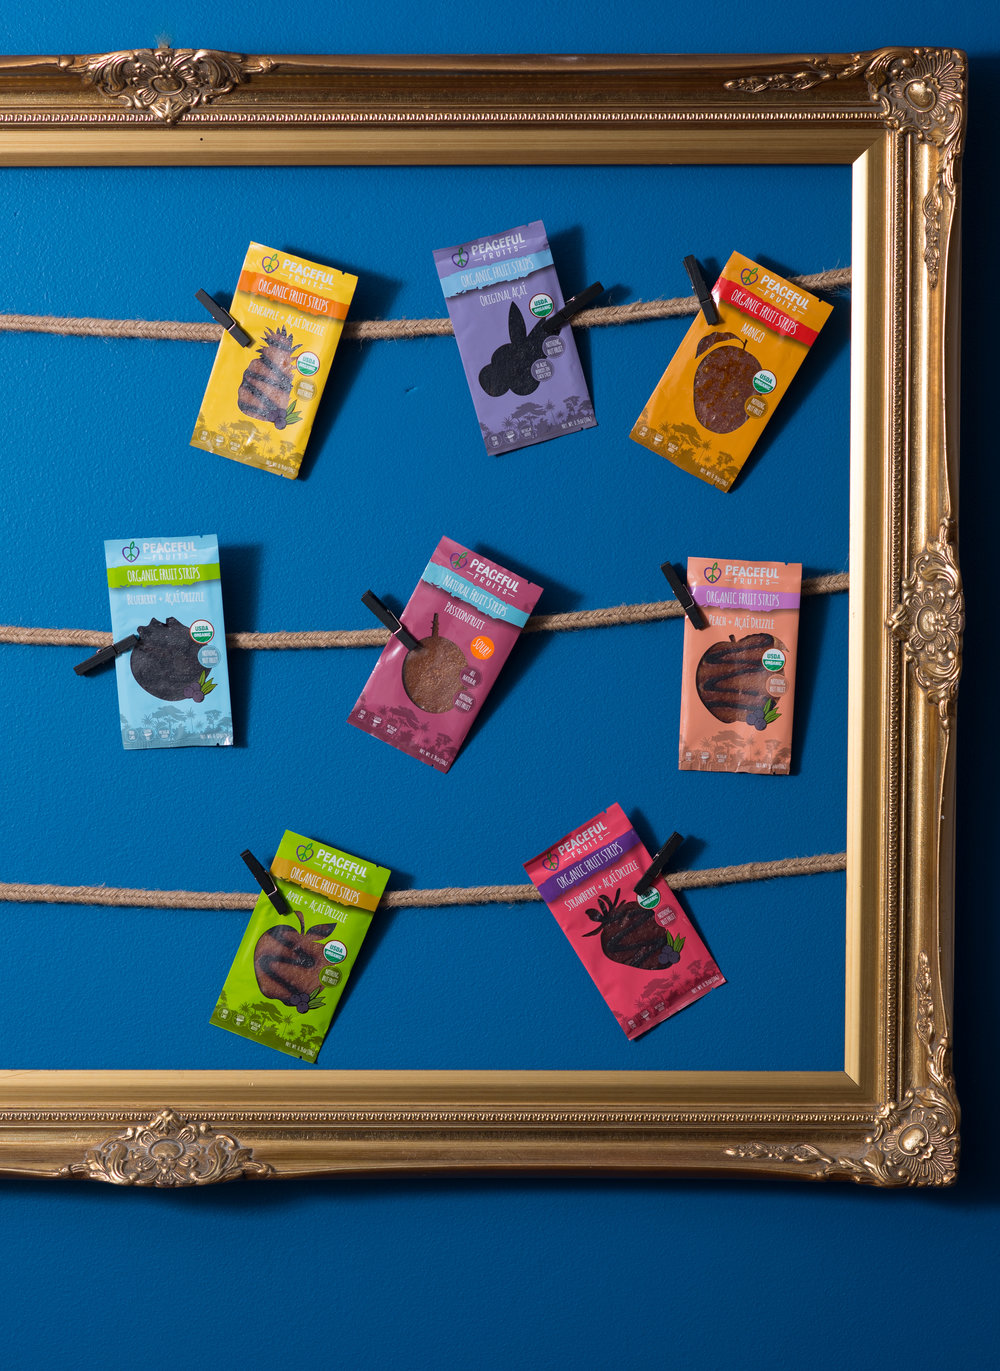 snacks hung on the wall